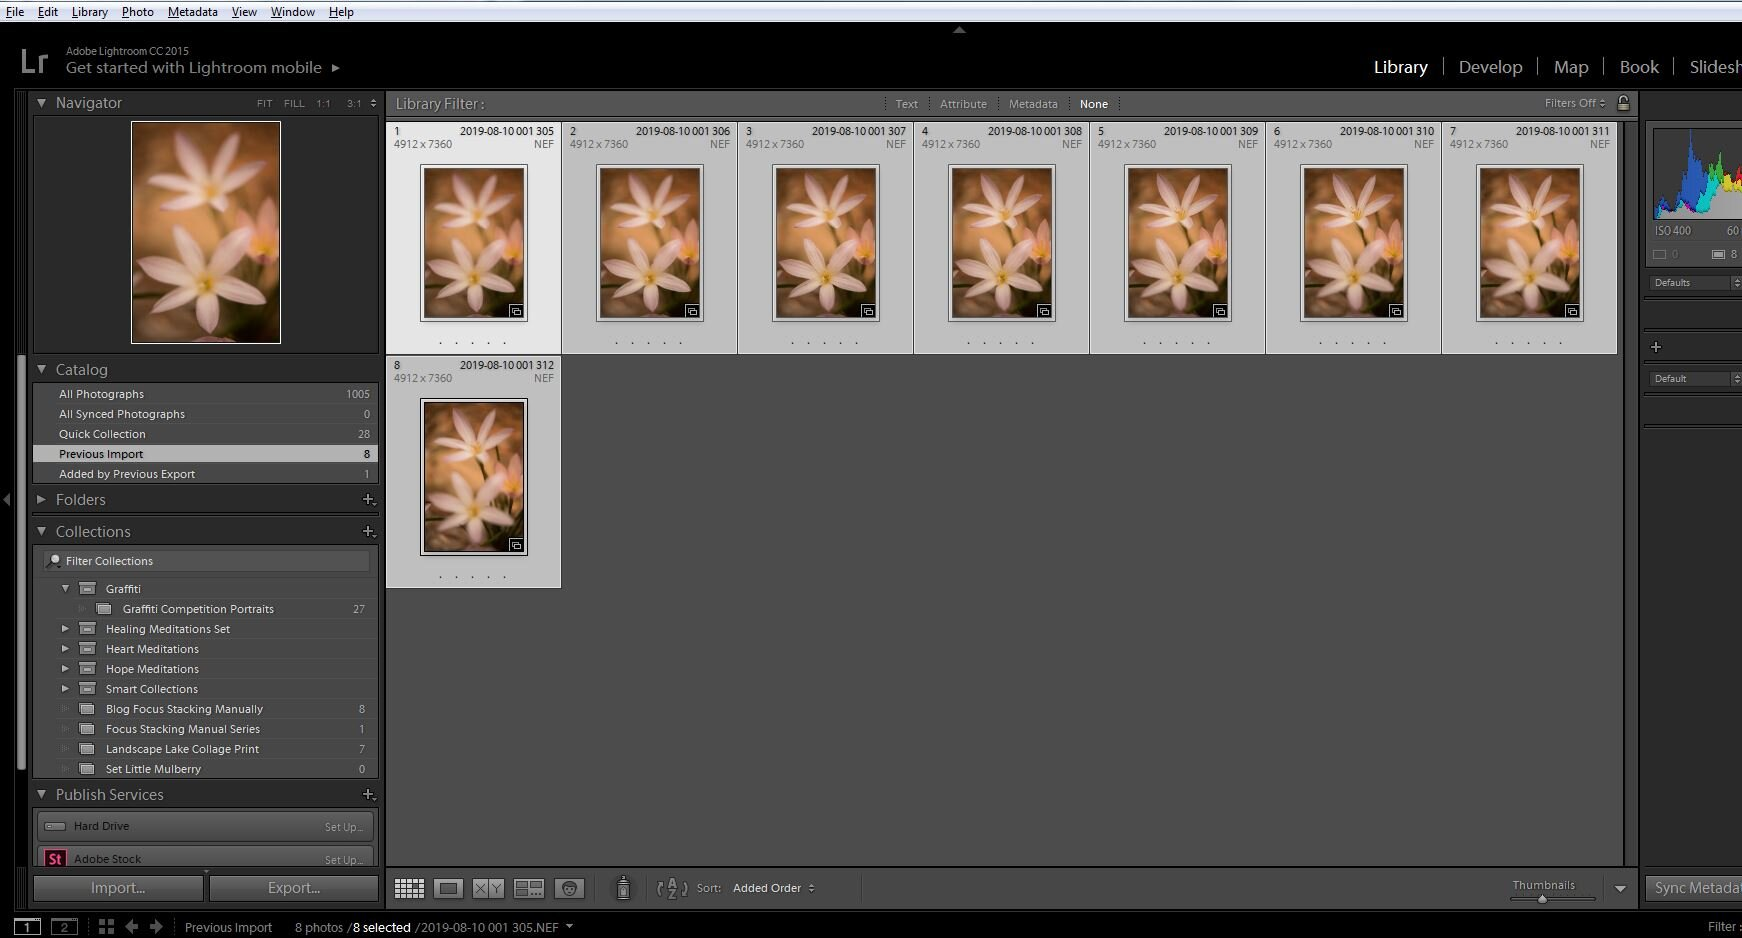 Eight (8) image focus stack series imported into Lightroom CC